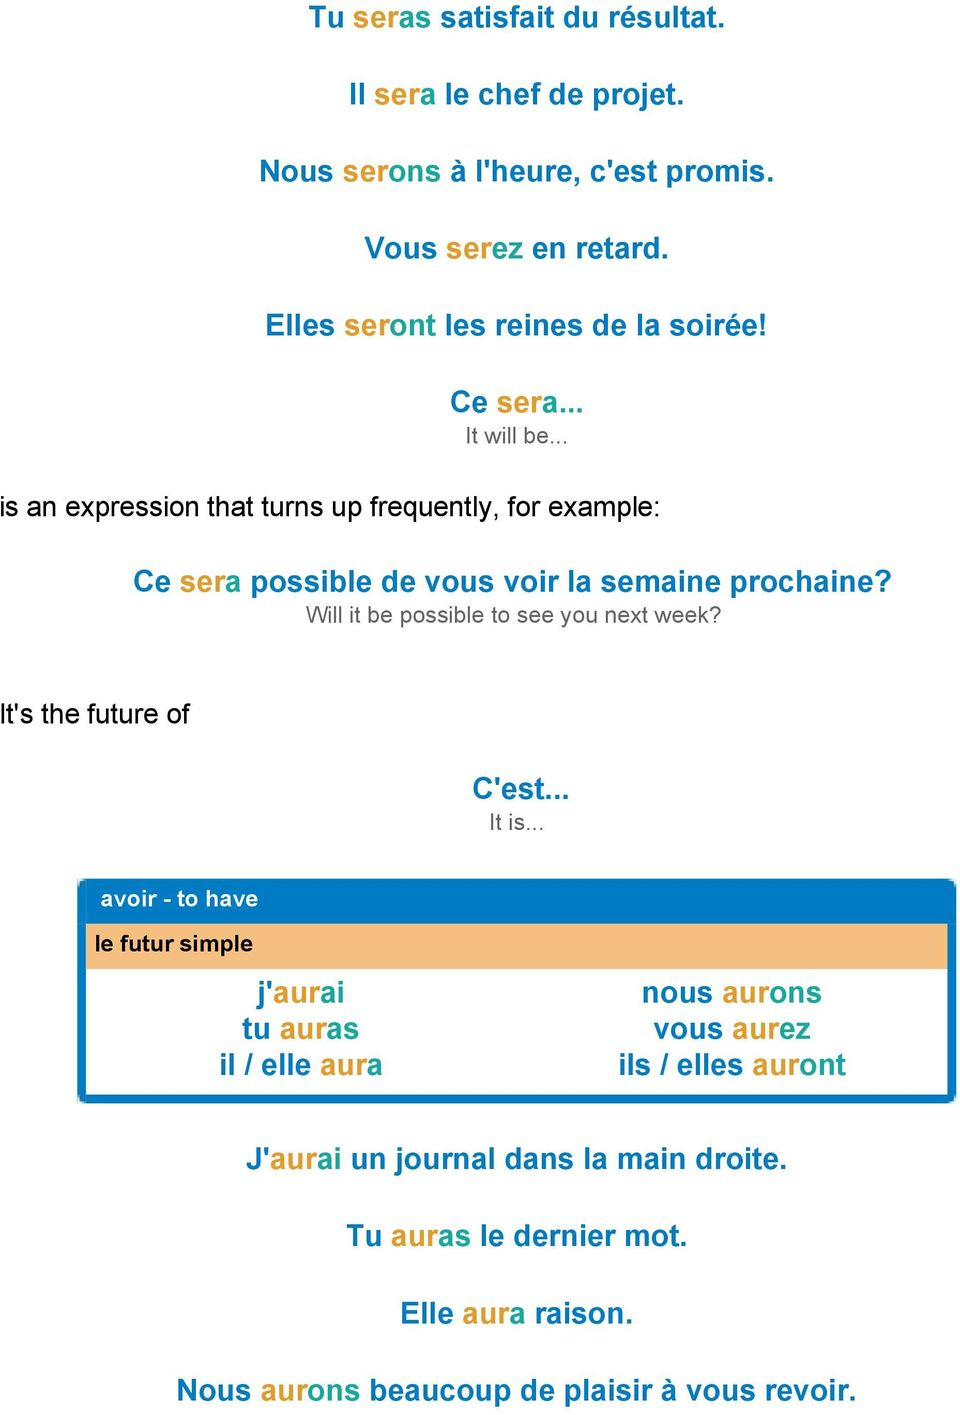 .. is an expression that turns up frequently, for example: Ce sera possible de vous voir la semaine prochaine?